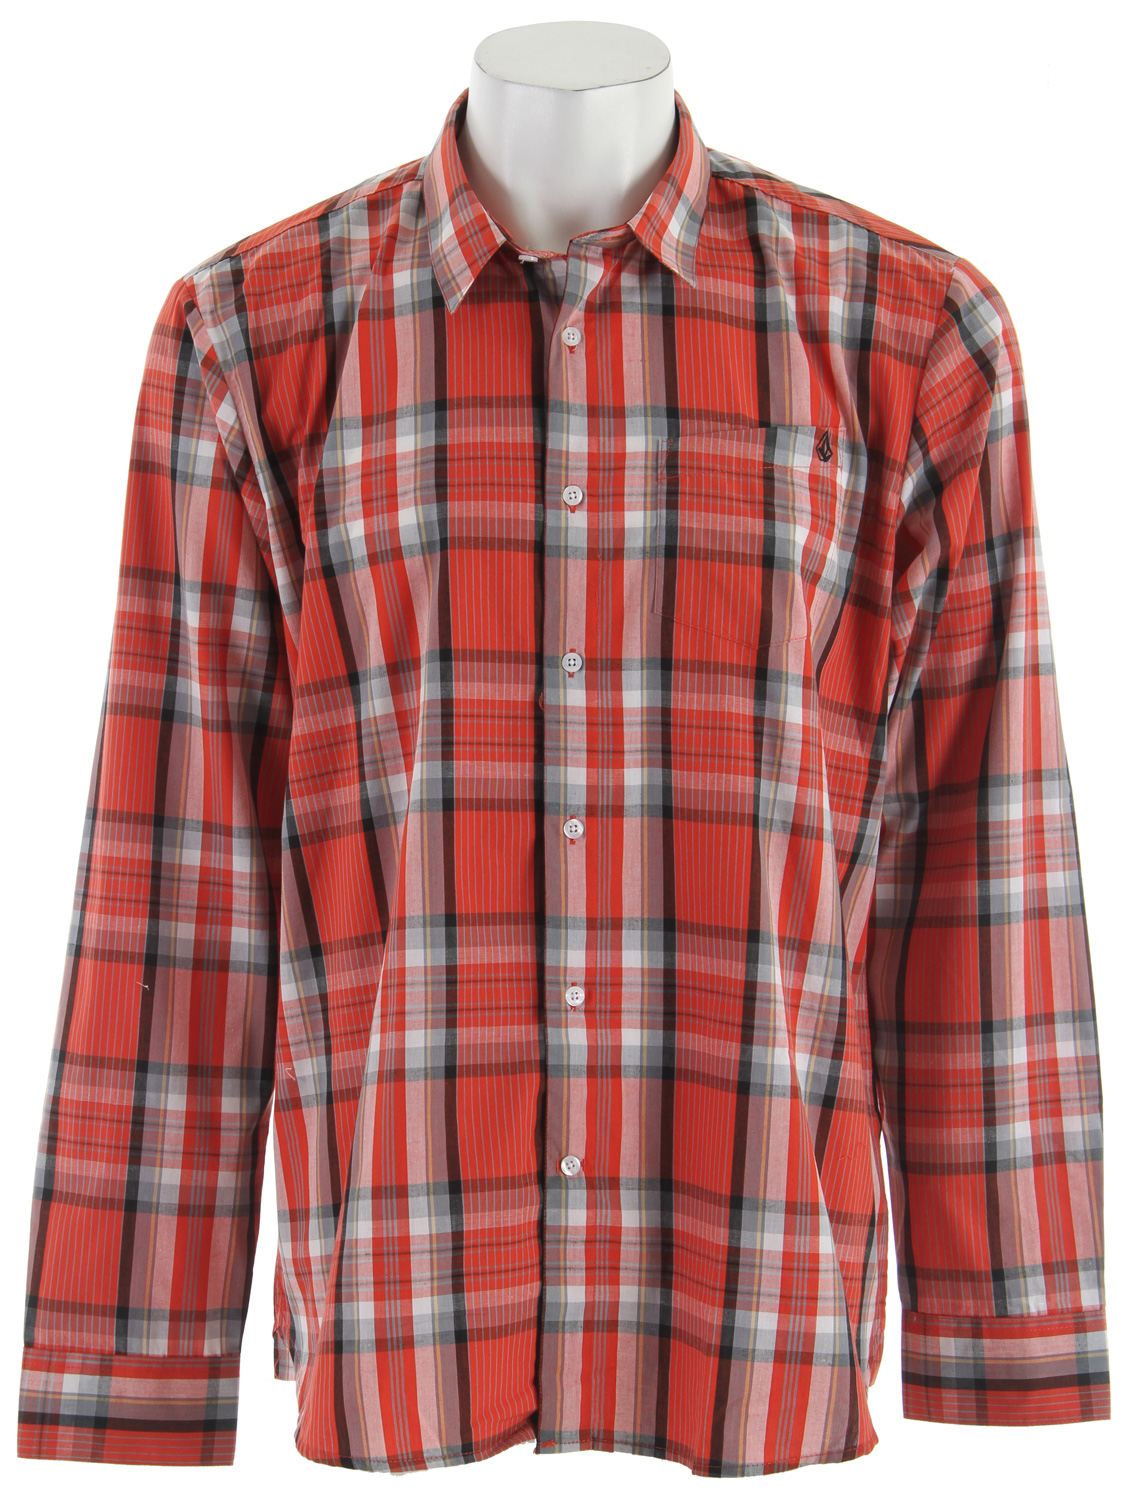 Surf The Volcom X Factor Plaid L/S Shirt is the best selling long sleeve shirt that picks up the pace in a classic plaid print. Ultra versatile and makes for a killer counterpart to whatever you pair it with. Designed with a chest pocket with a pen slot and small logo stone embroidery, a contrast innerKey Features of the Volcom X Factor Plaid L/S Shirt: Classic Fit Yarn Dye Shirt With Pen Slot Detail at Pocket and Stone Embroidery Garment Wash Corpo Collection 60% Cotton/40% Polyester - $36.95